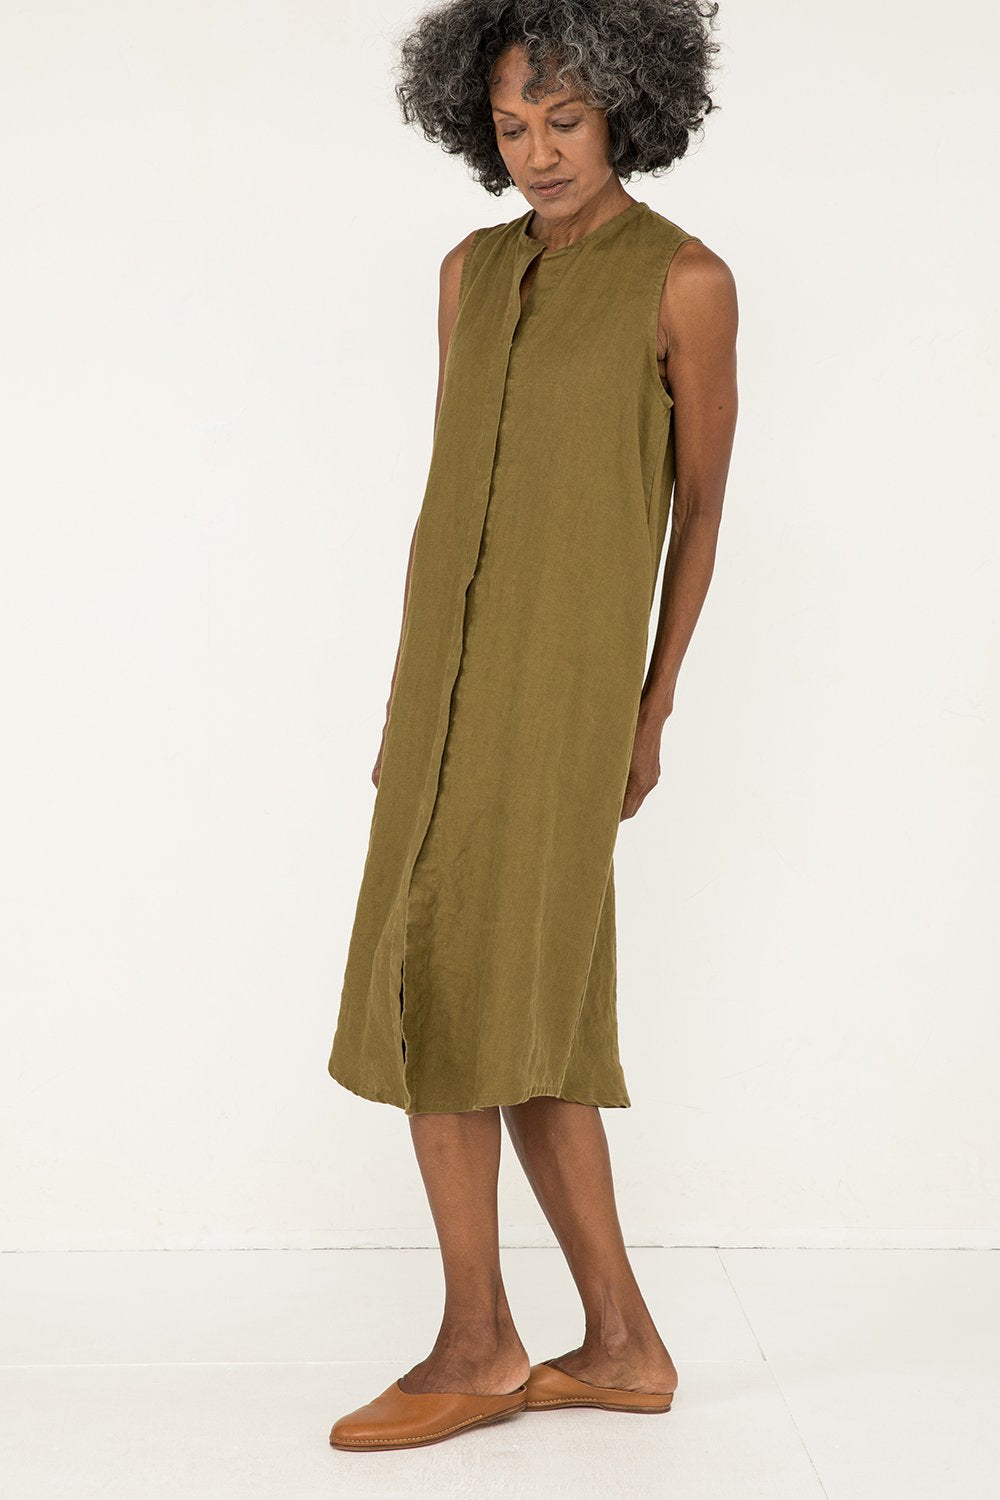 Sleeveless Kara Snap Dress in Midweight Linen Olive - Pat-S